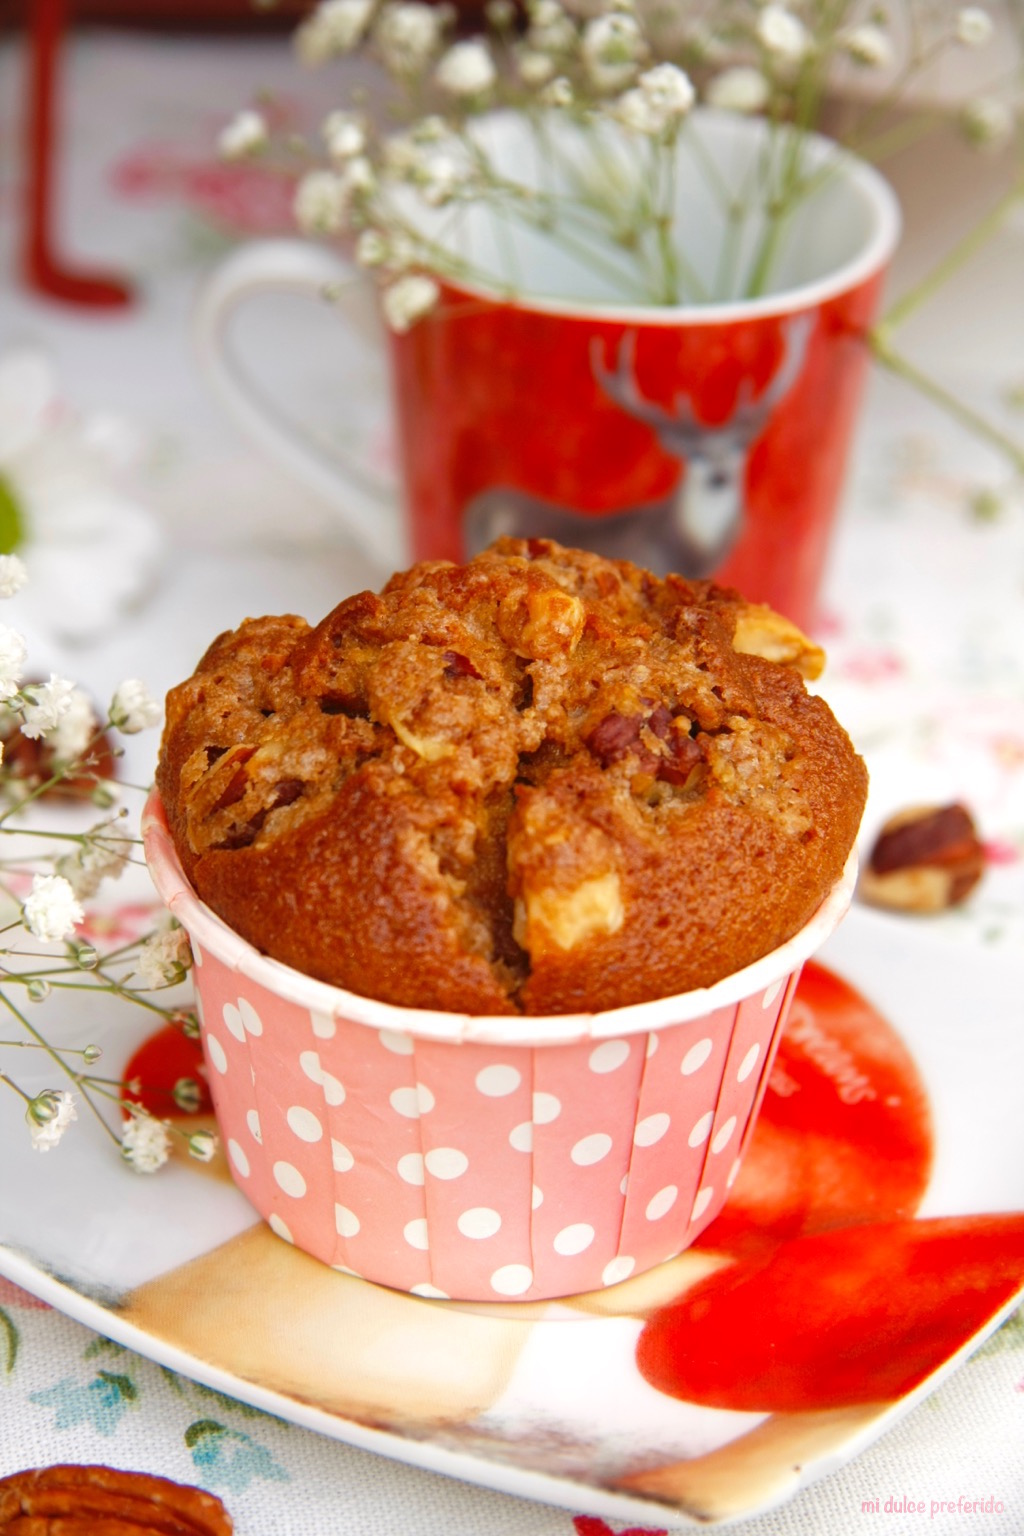 muffins-de-toffee-y-frutos-secos-5